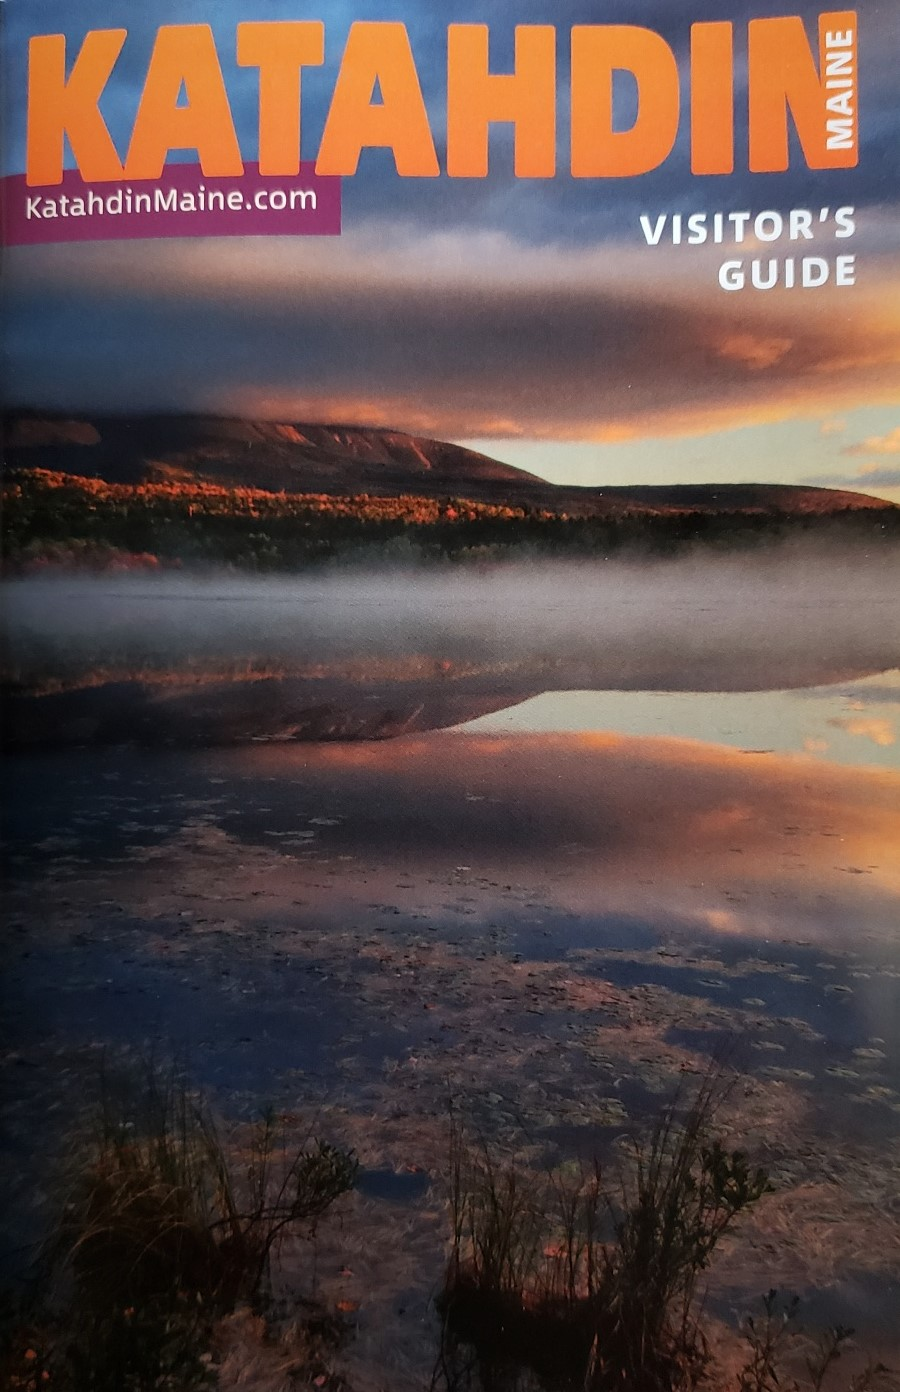 The 2019 Visitors Guide is here!